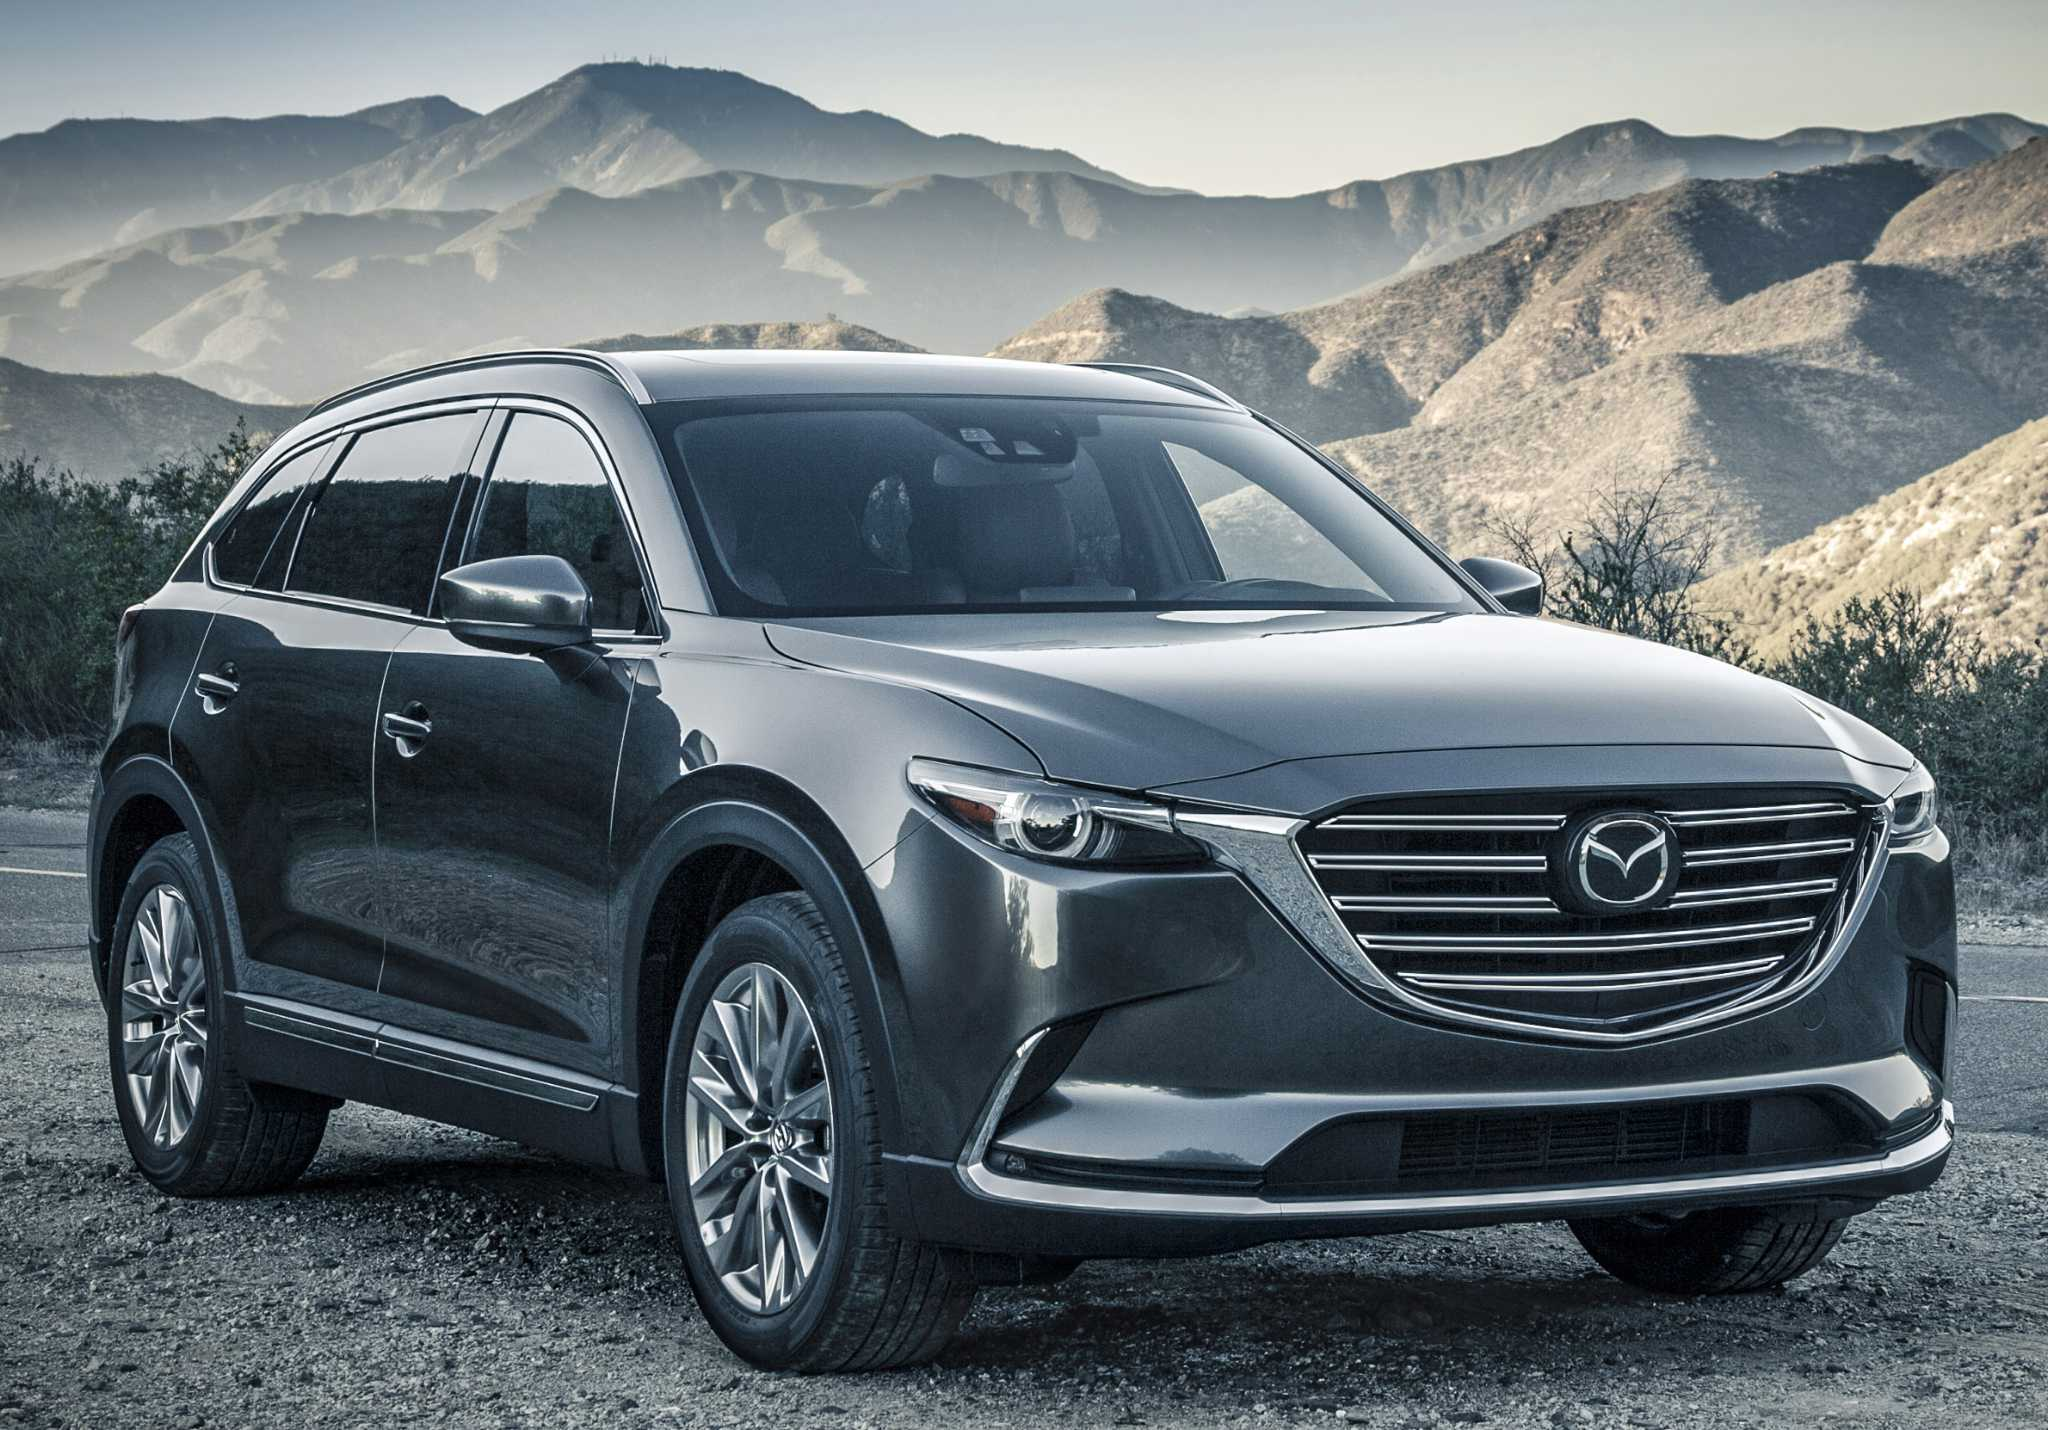 MAZDA CX 9 Crossover offers great styling sporty performance